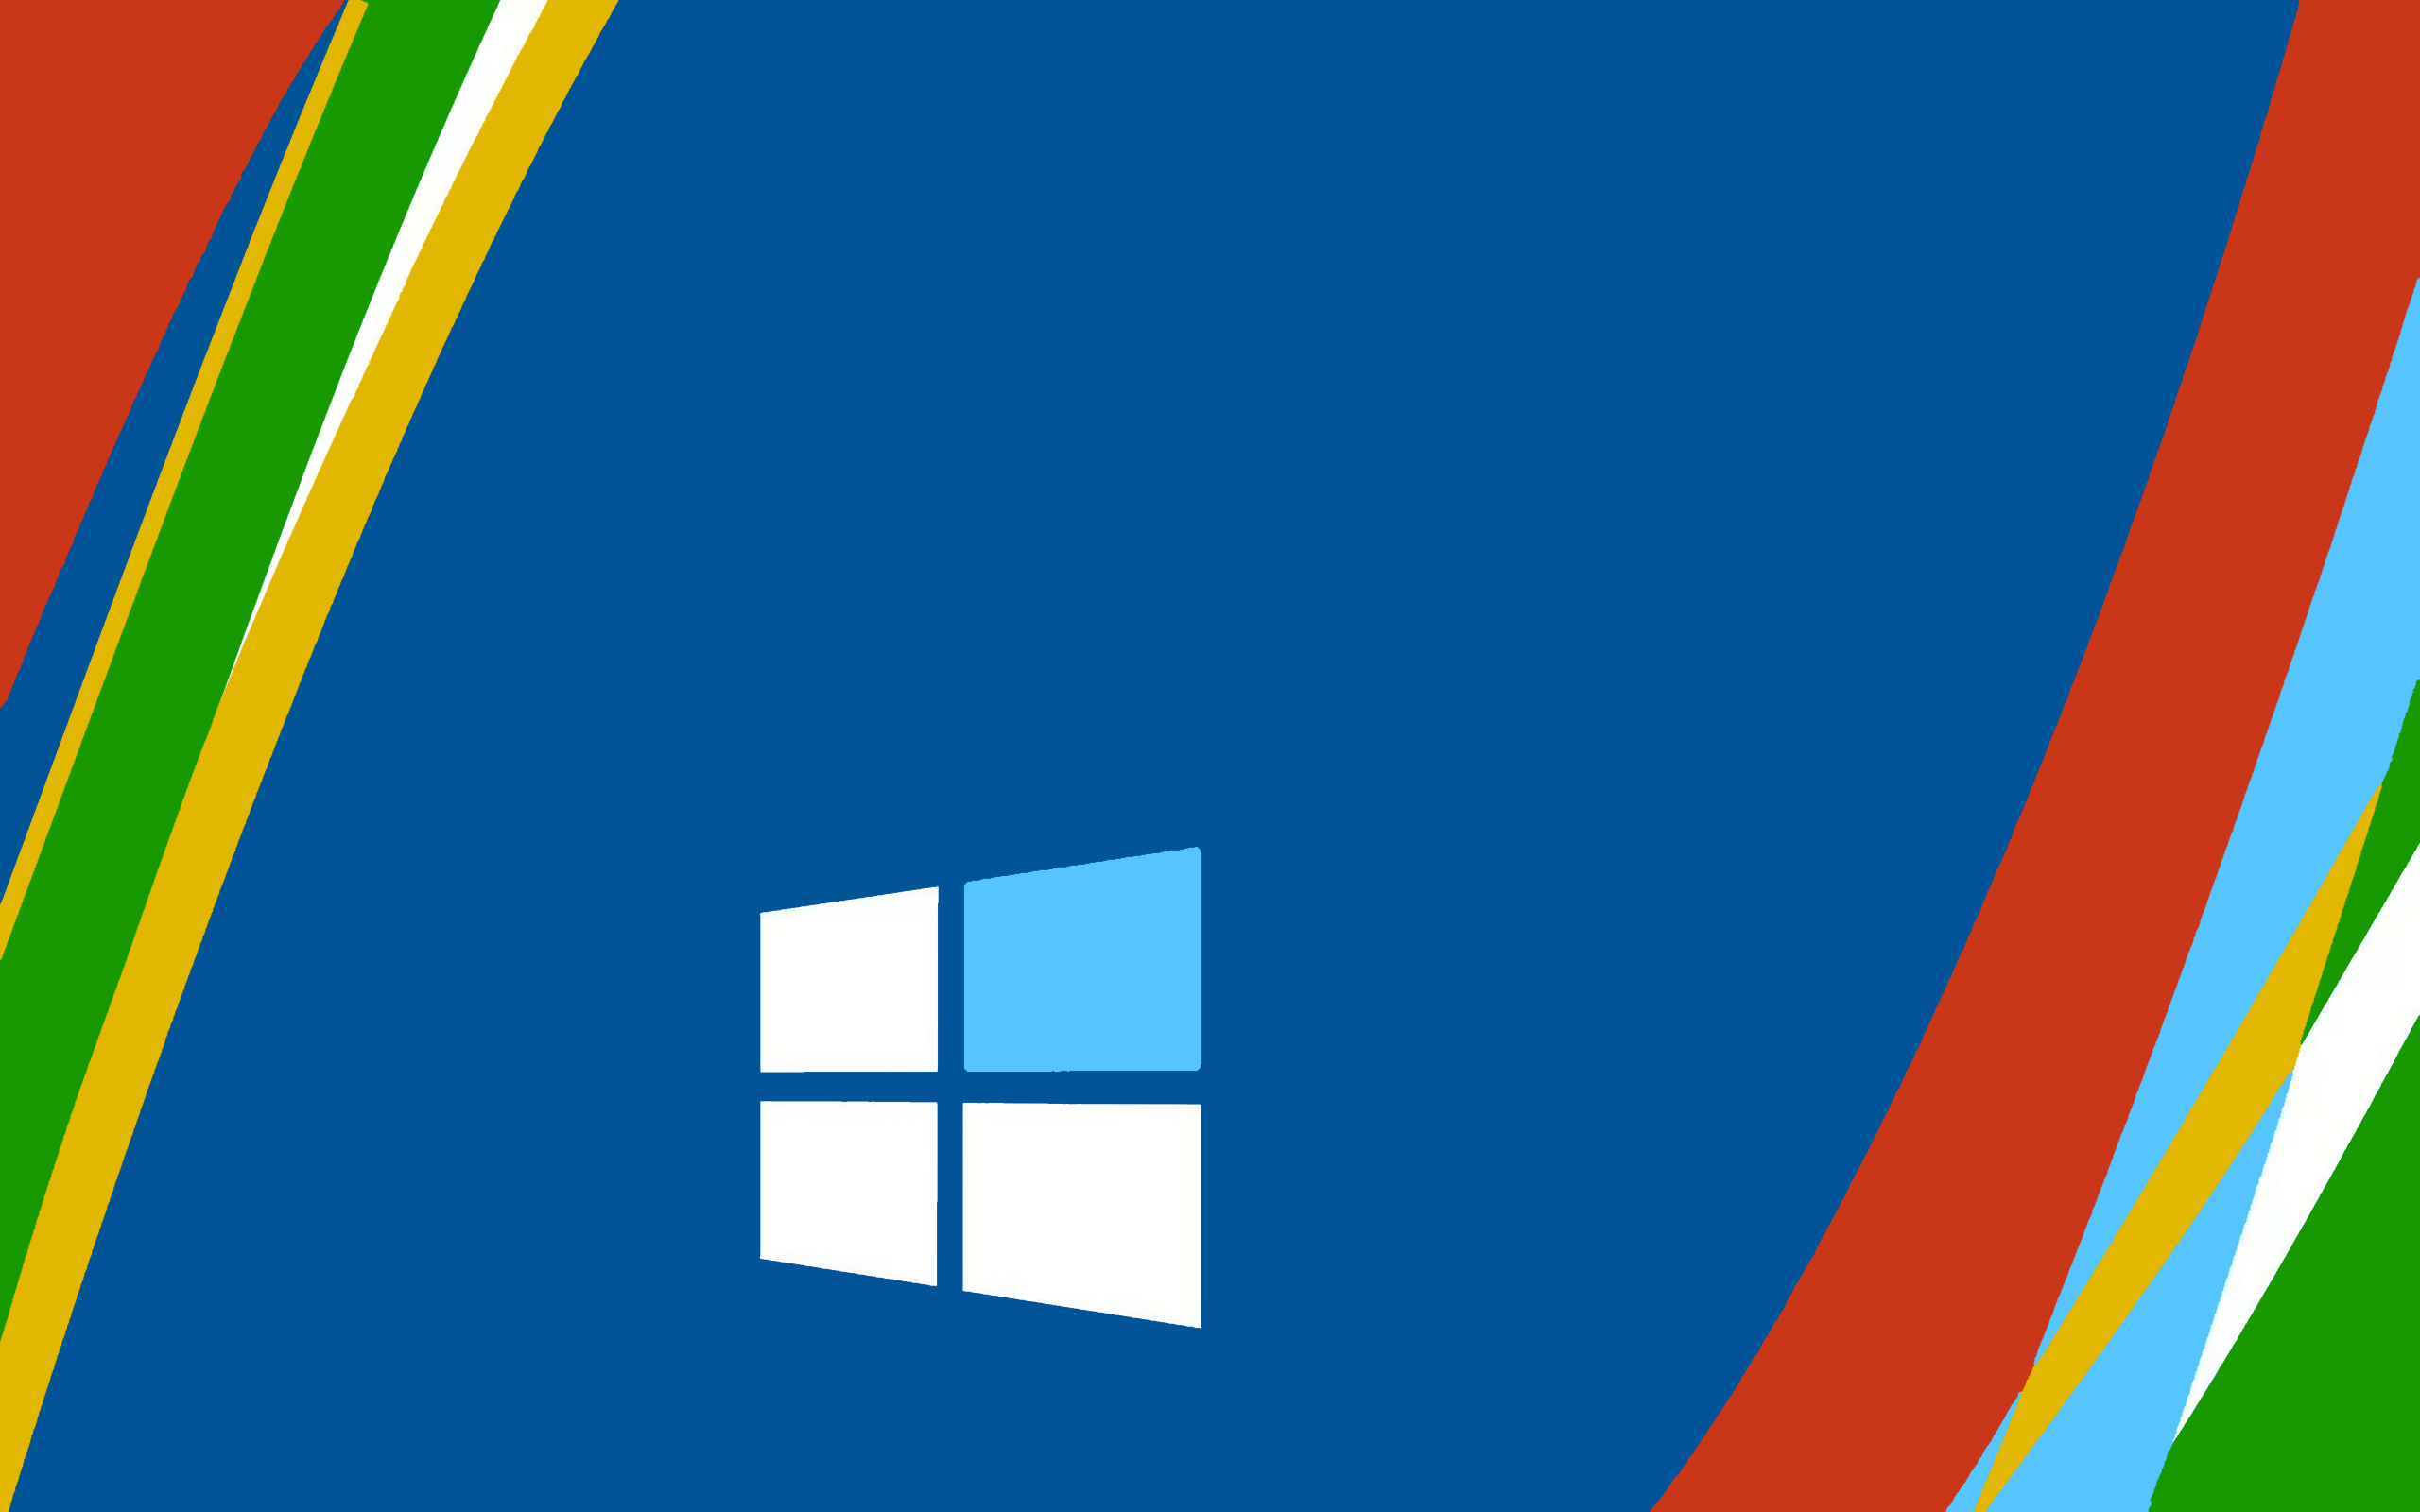 Windows 10 Wallpaper Hd Pixelstalknet